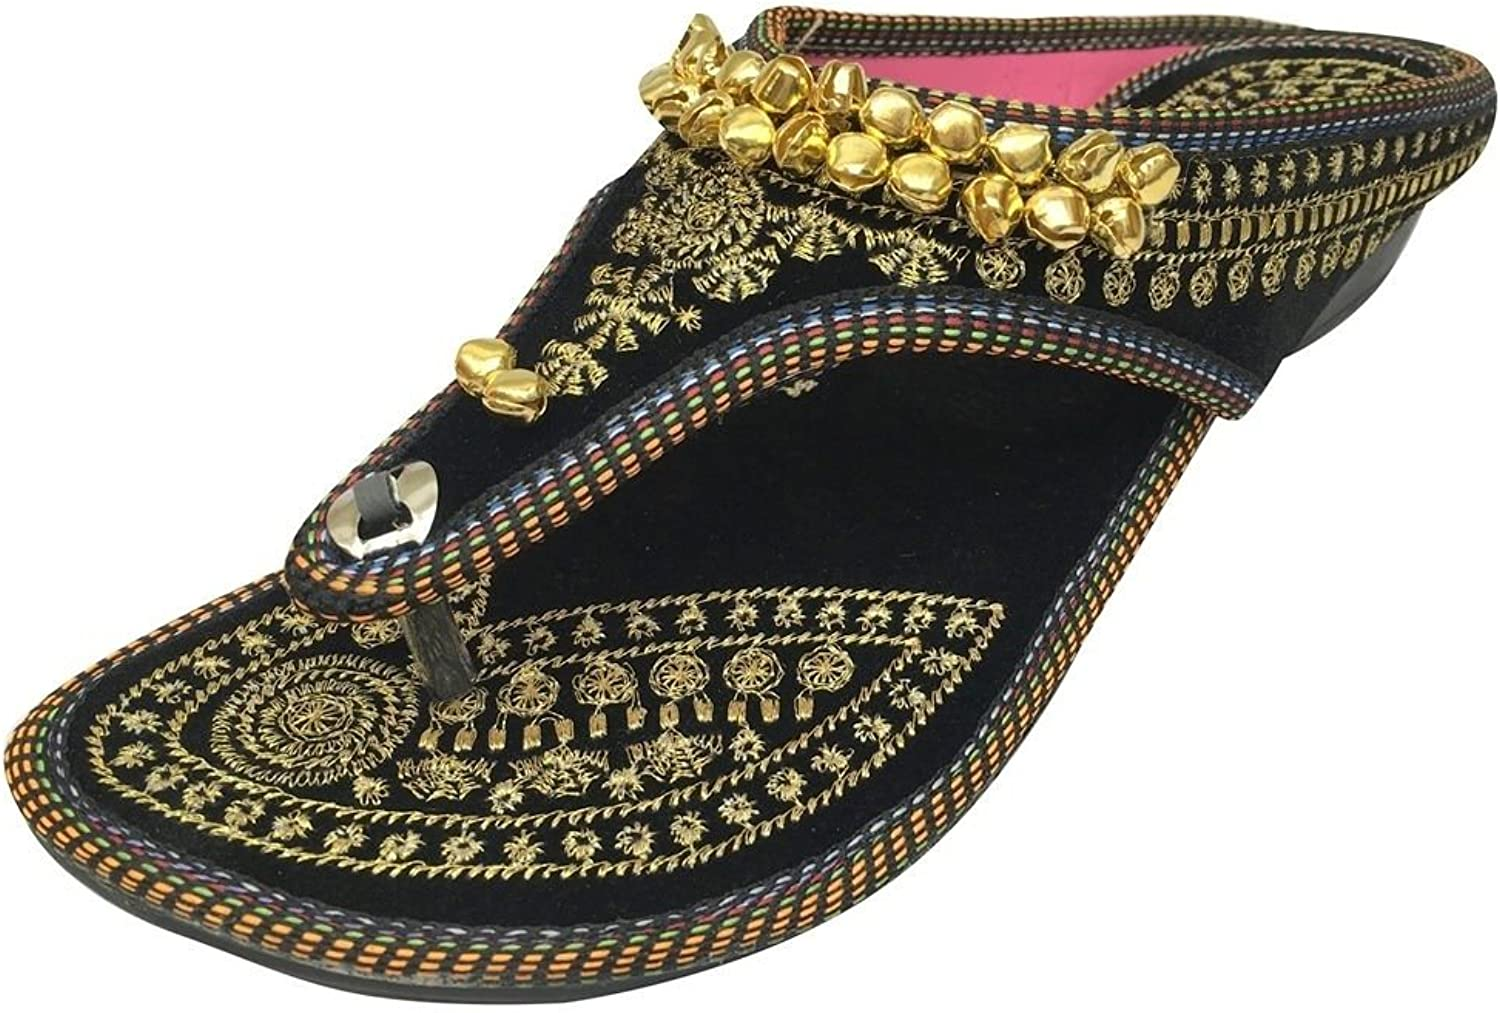 Step n Style Ladies Ethnic shoes Khussa Jutti Salwar Kameez Rajasthani Beaded shoes